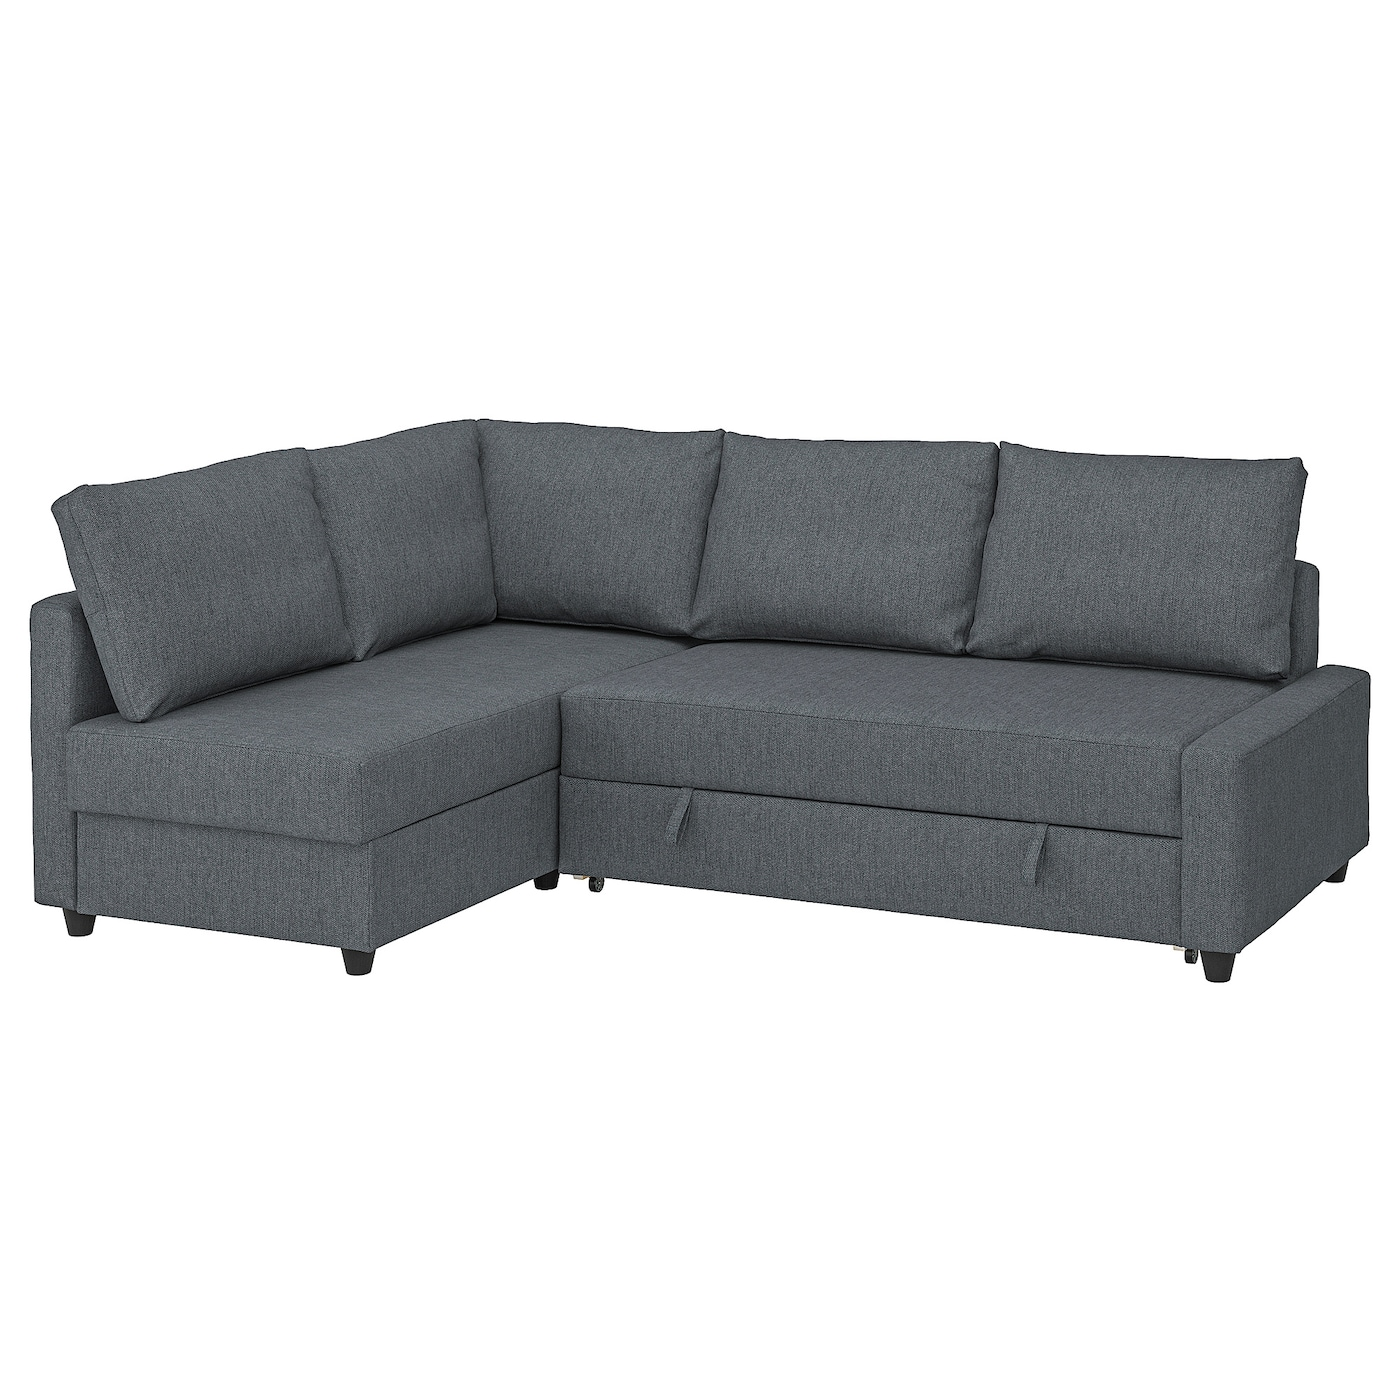 Picture of: Friheten Corner Sofa Bed With Storage With Extra Back Cushions Hyllie Dark Grey Ikea